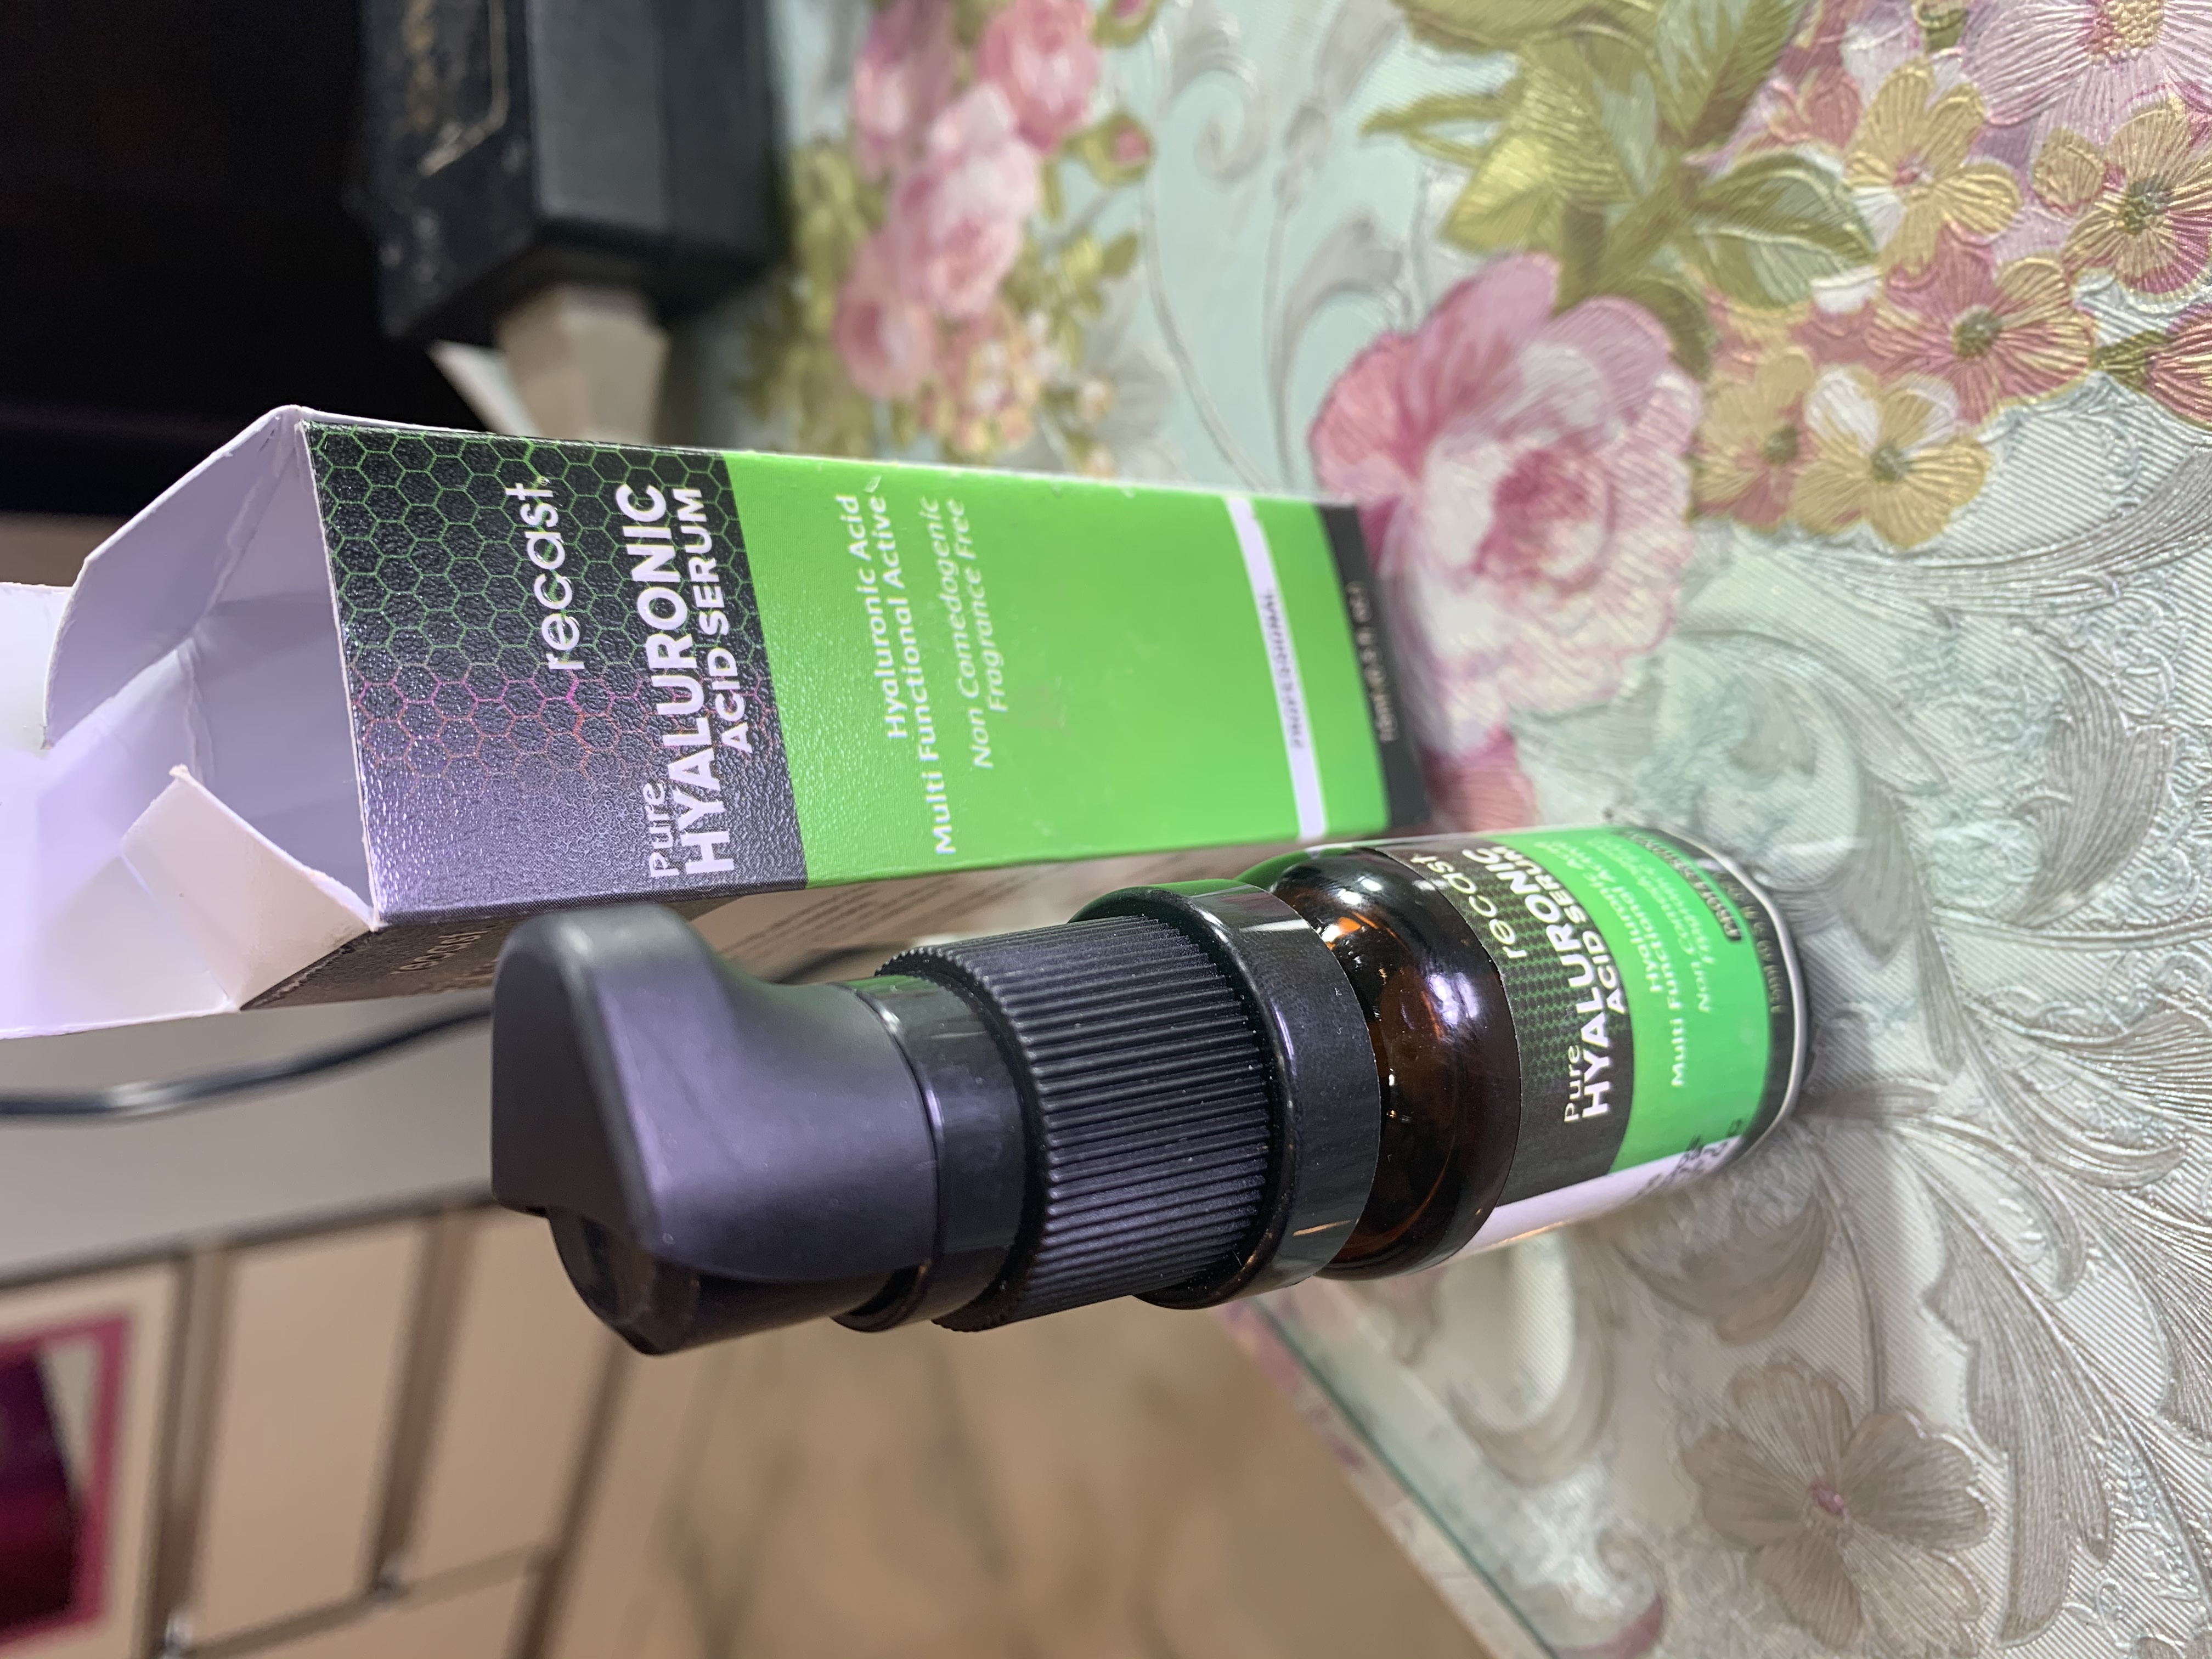 Recast Pure Hyaluronic Acid Serum pic 3-Amazing hydration product-By makeoversbymuskan